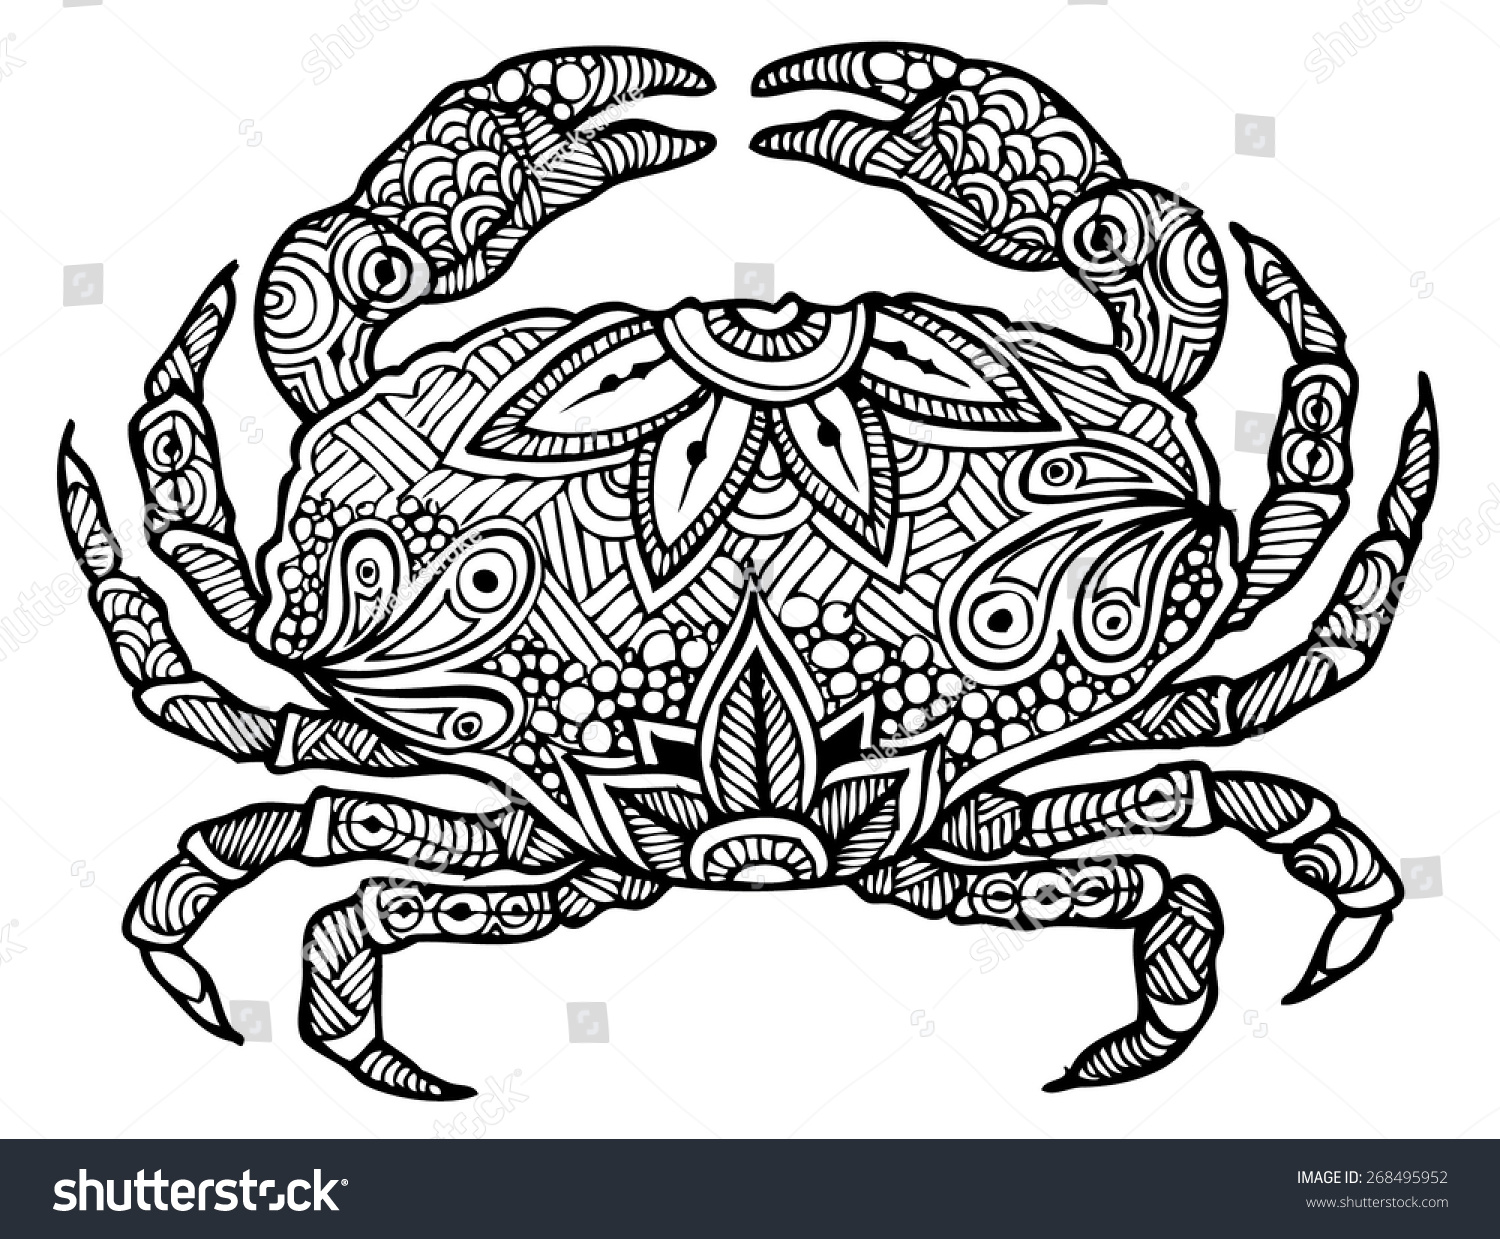 Zentangle Style Crab Vector Stock Vector 268495952